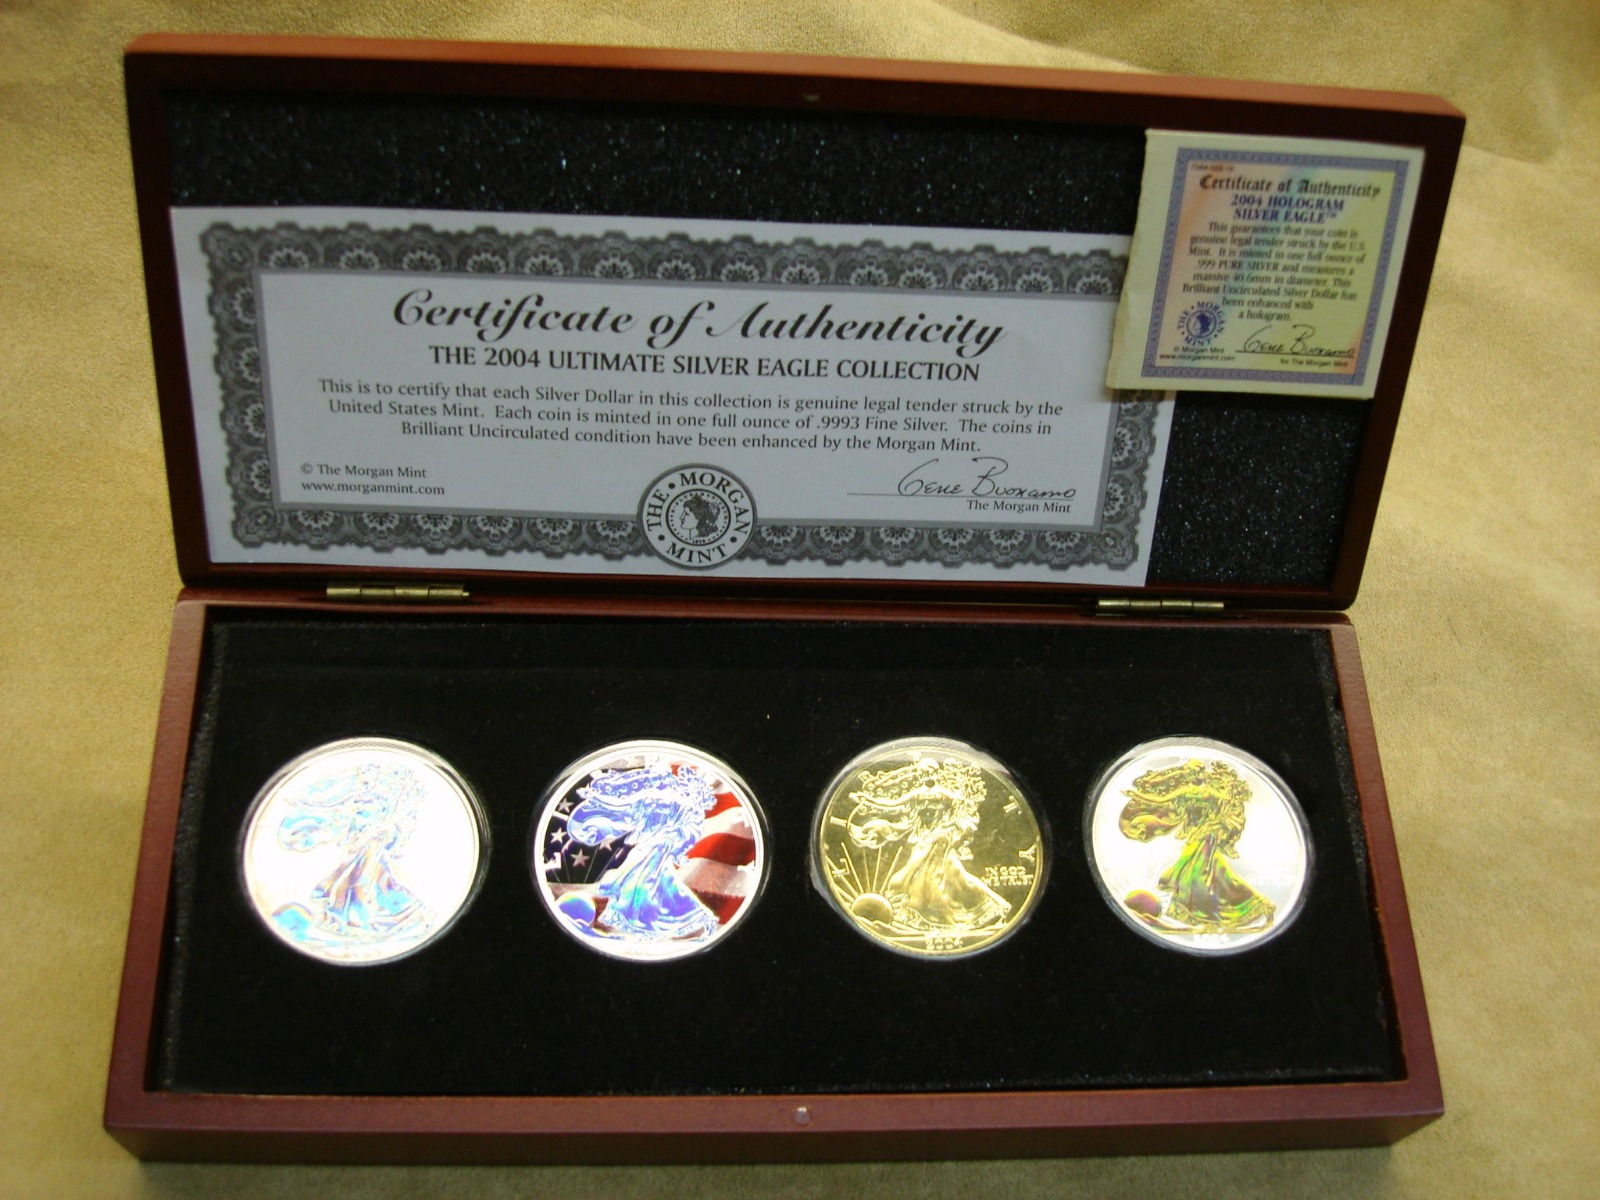 2004 Ultimate Silver Eagle Collection 4 Coin Set W